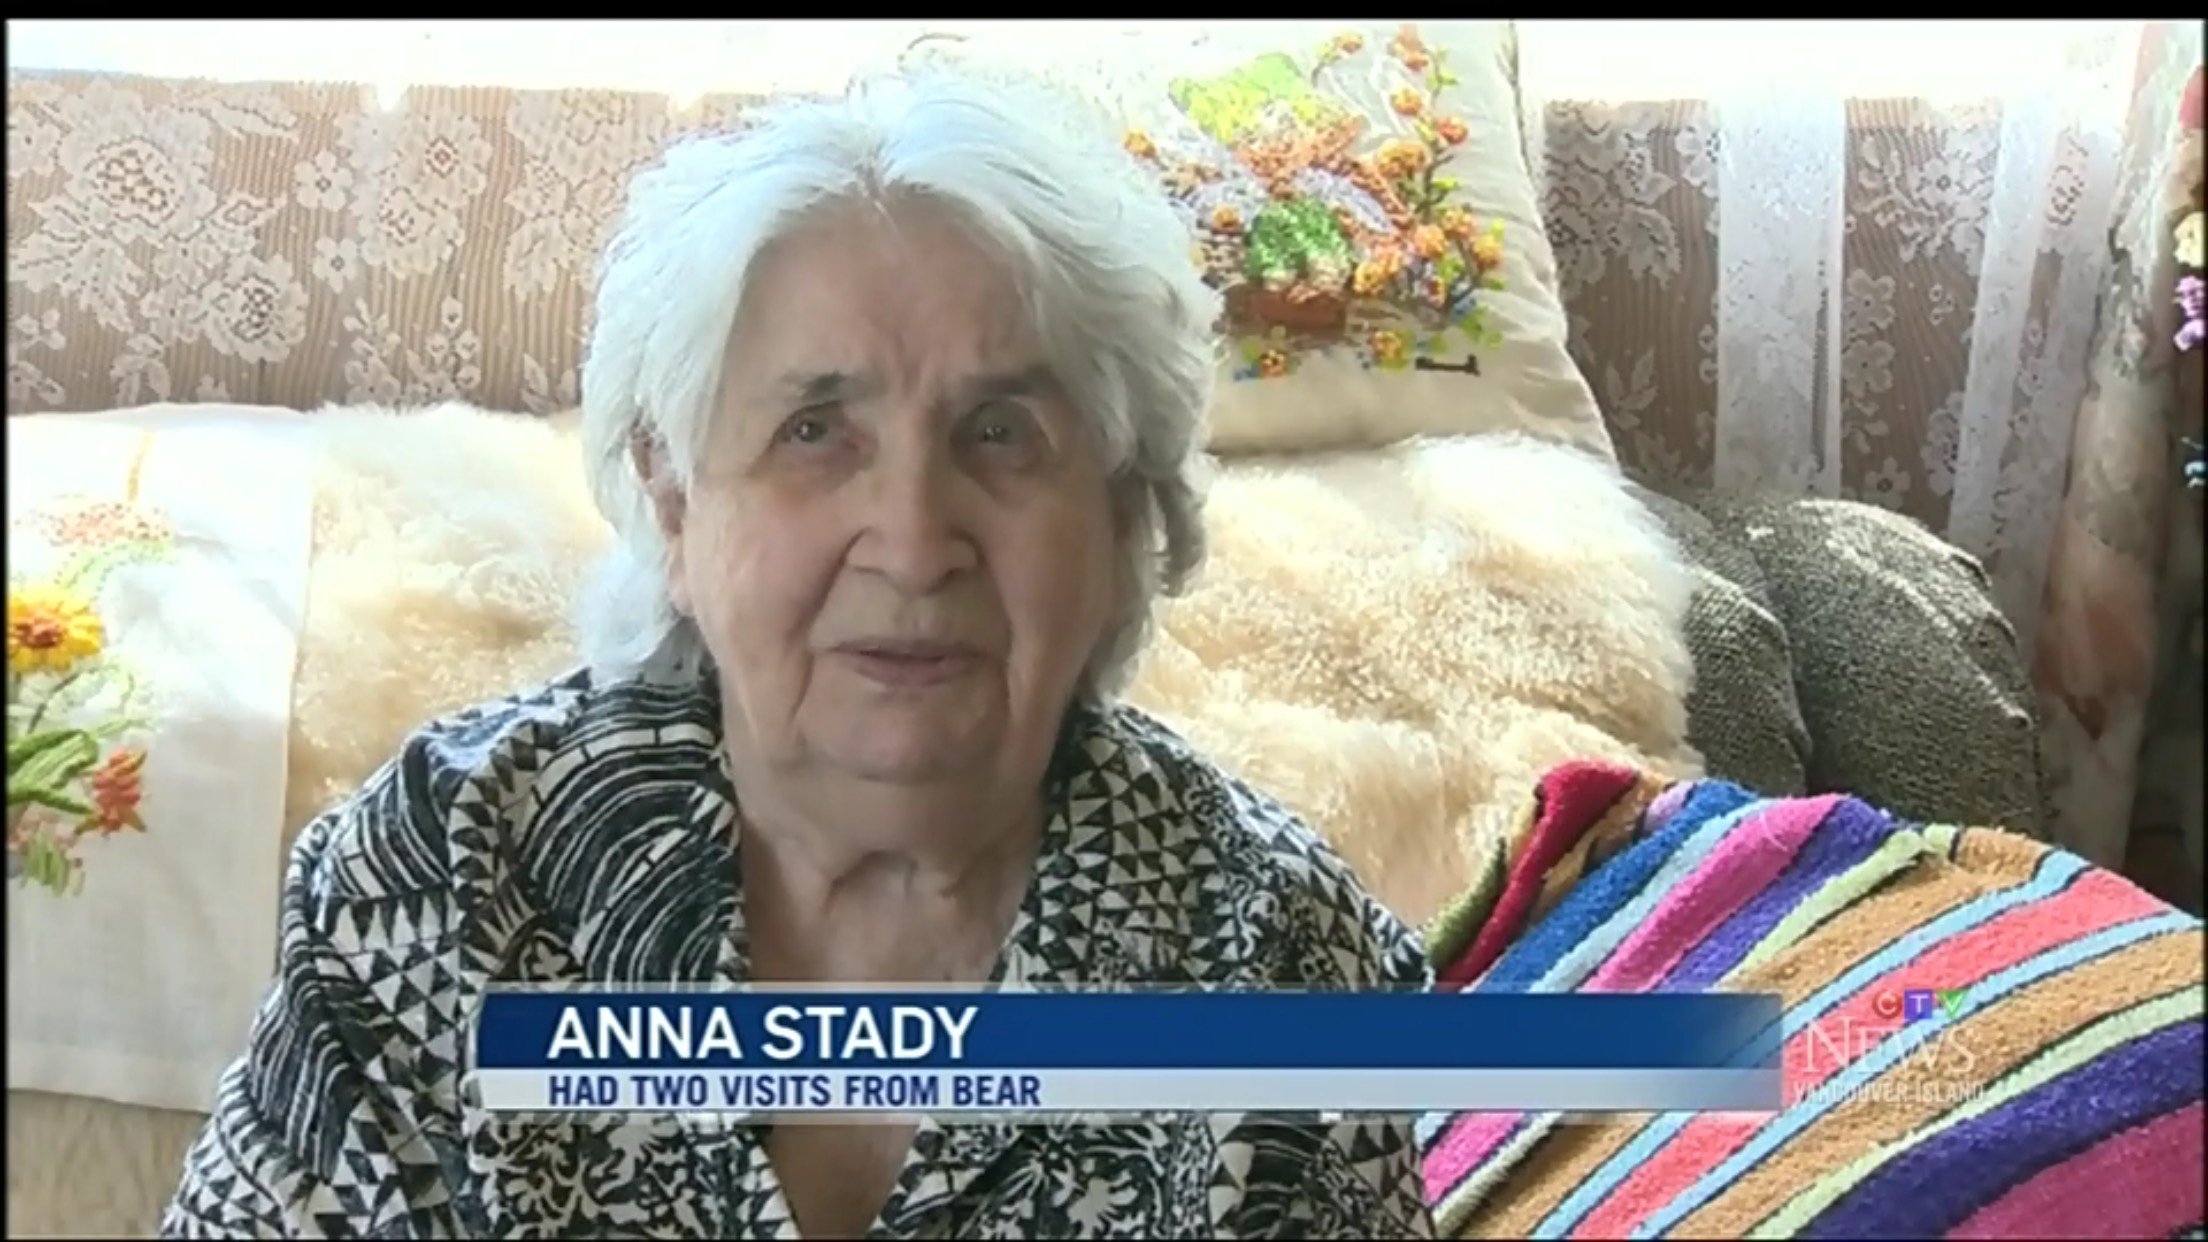 Anna Stady: Had Two Visits From Bear